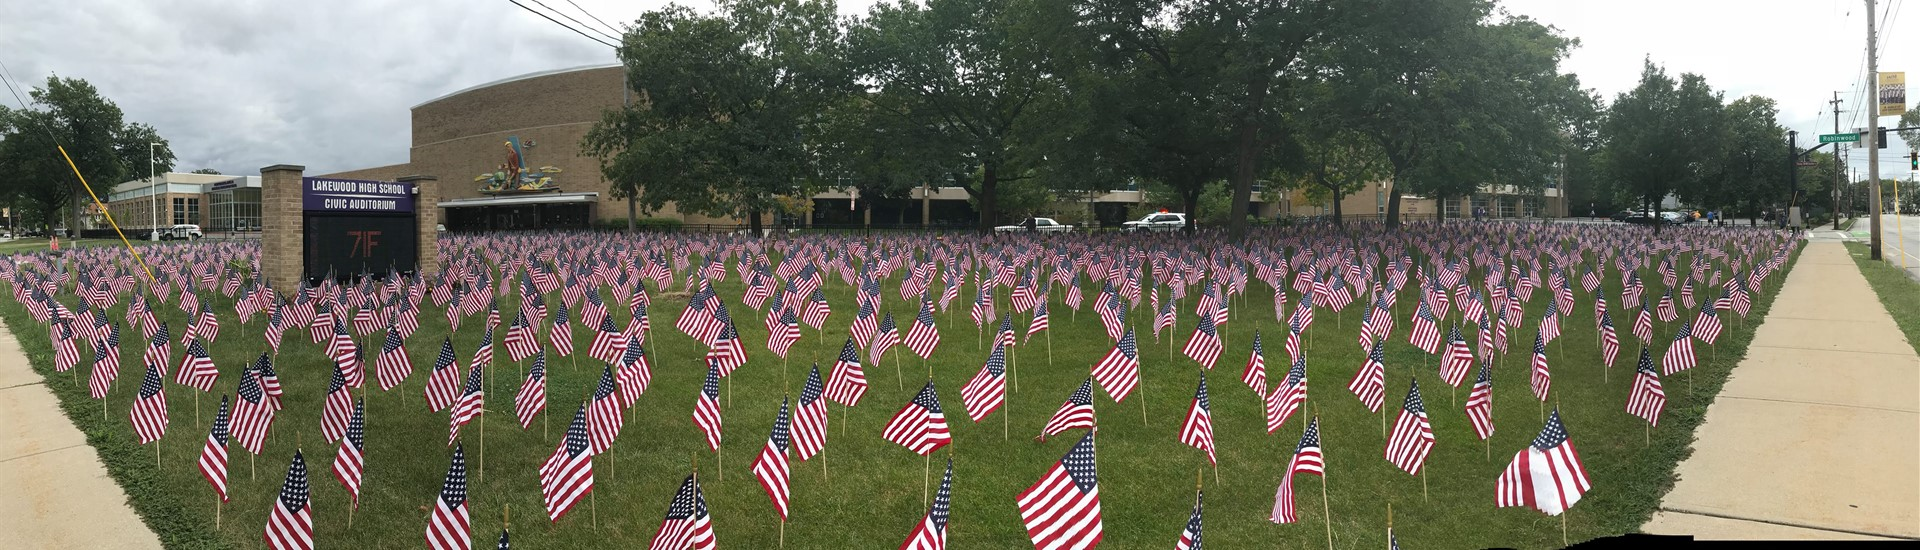 9-11 flags at LHS